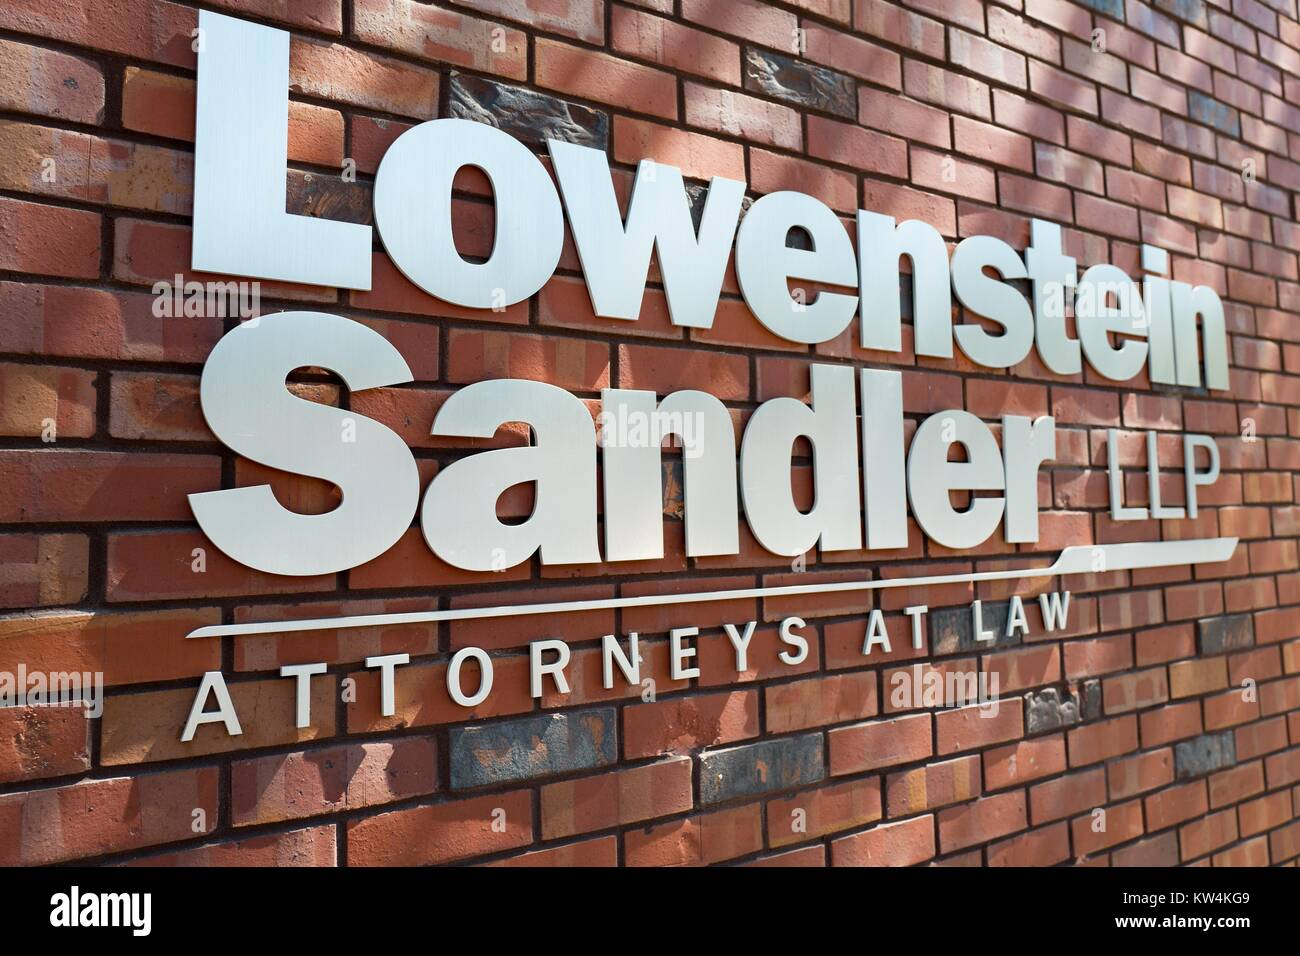 Lawyer Signboard Stock Photos & Lawyer Signboard Stock Images - Alamy